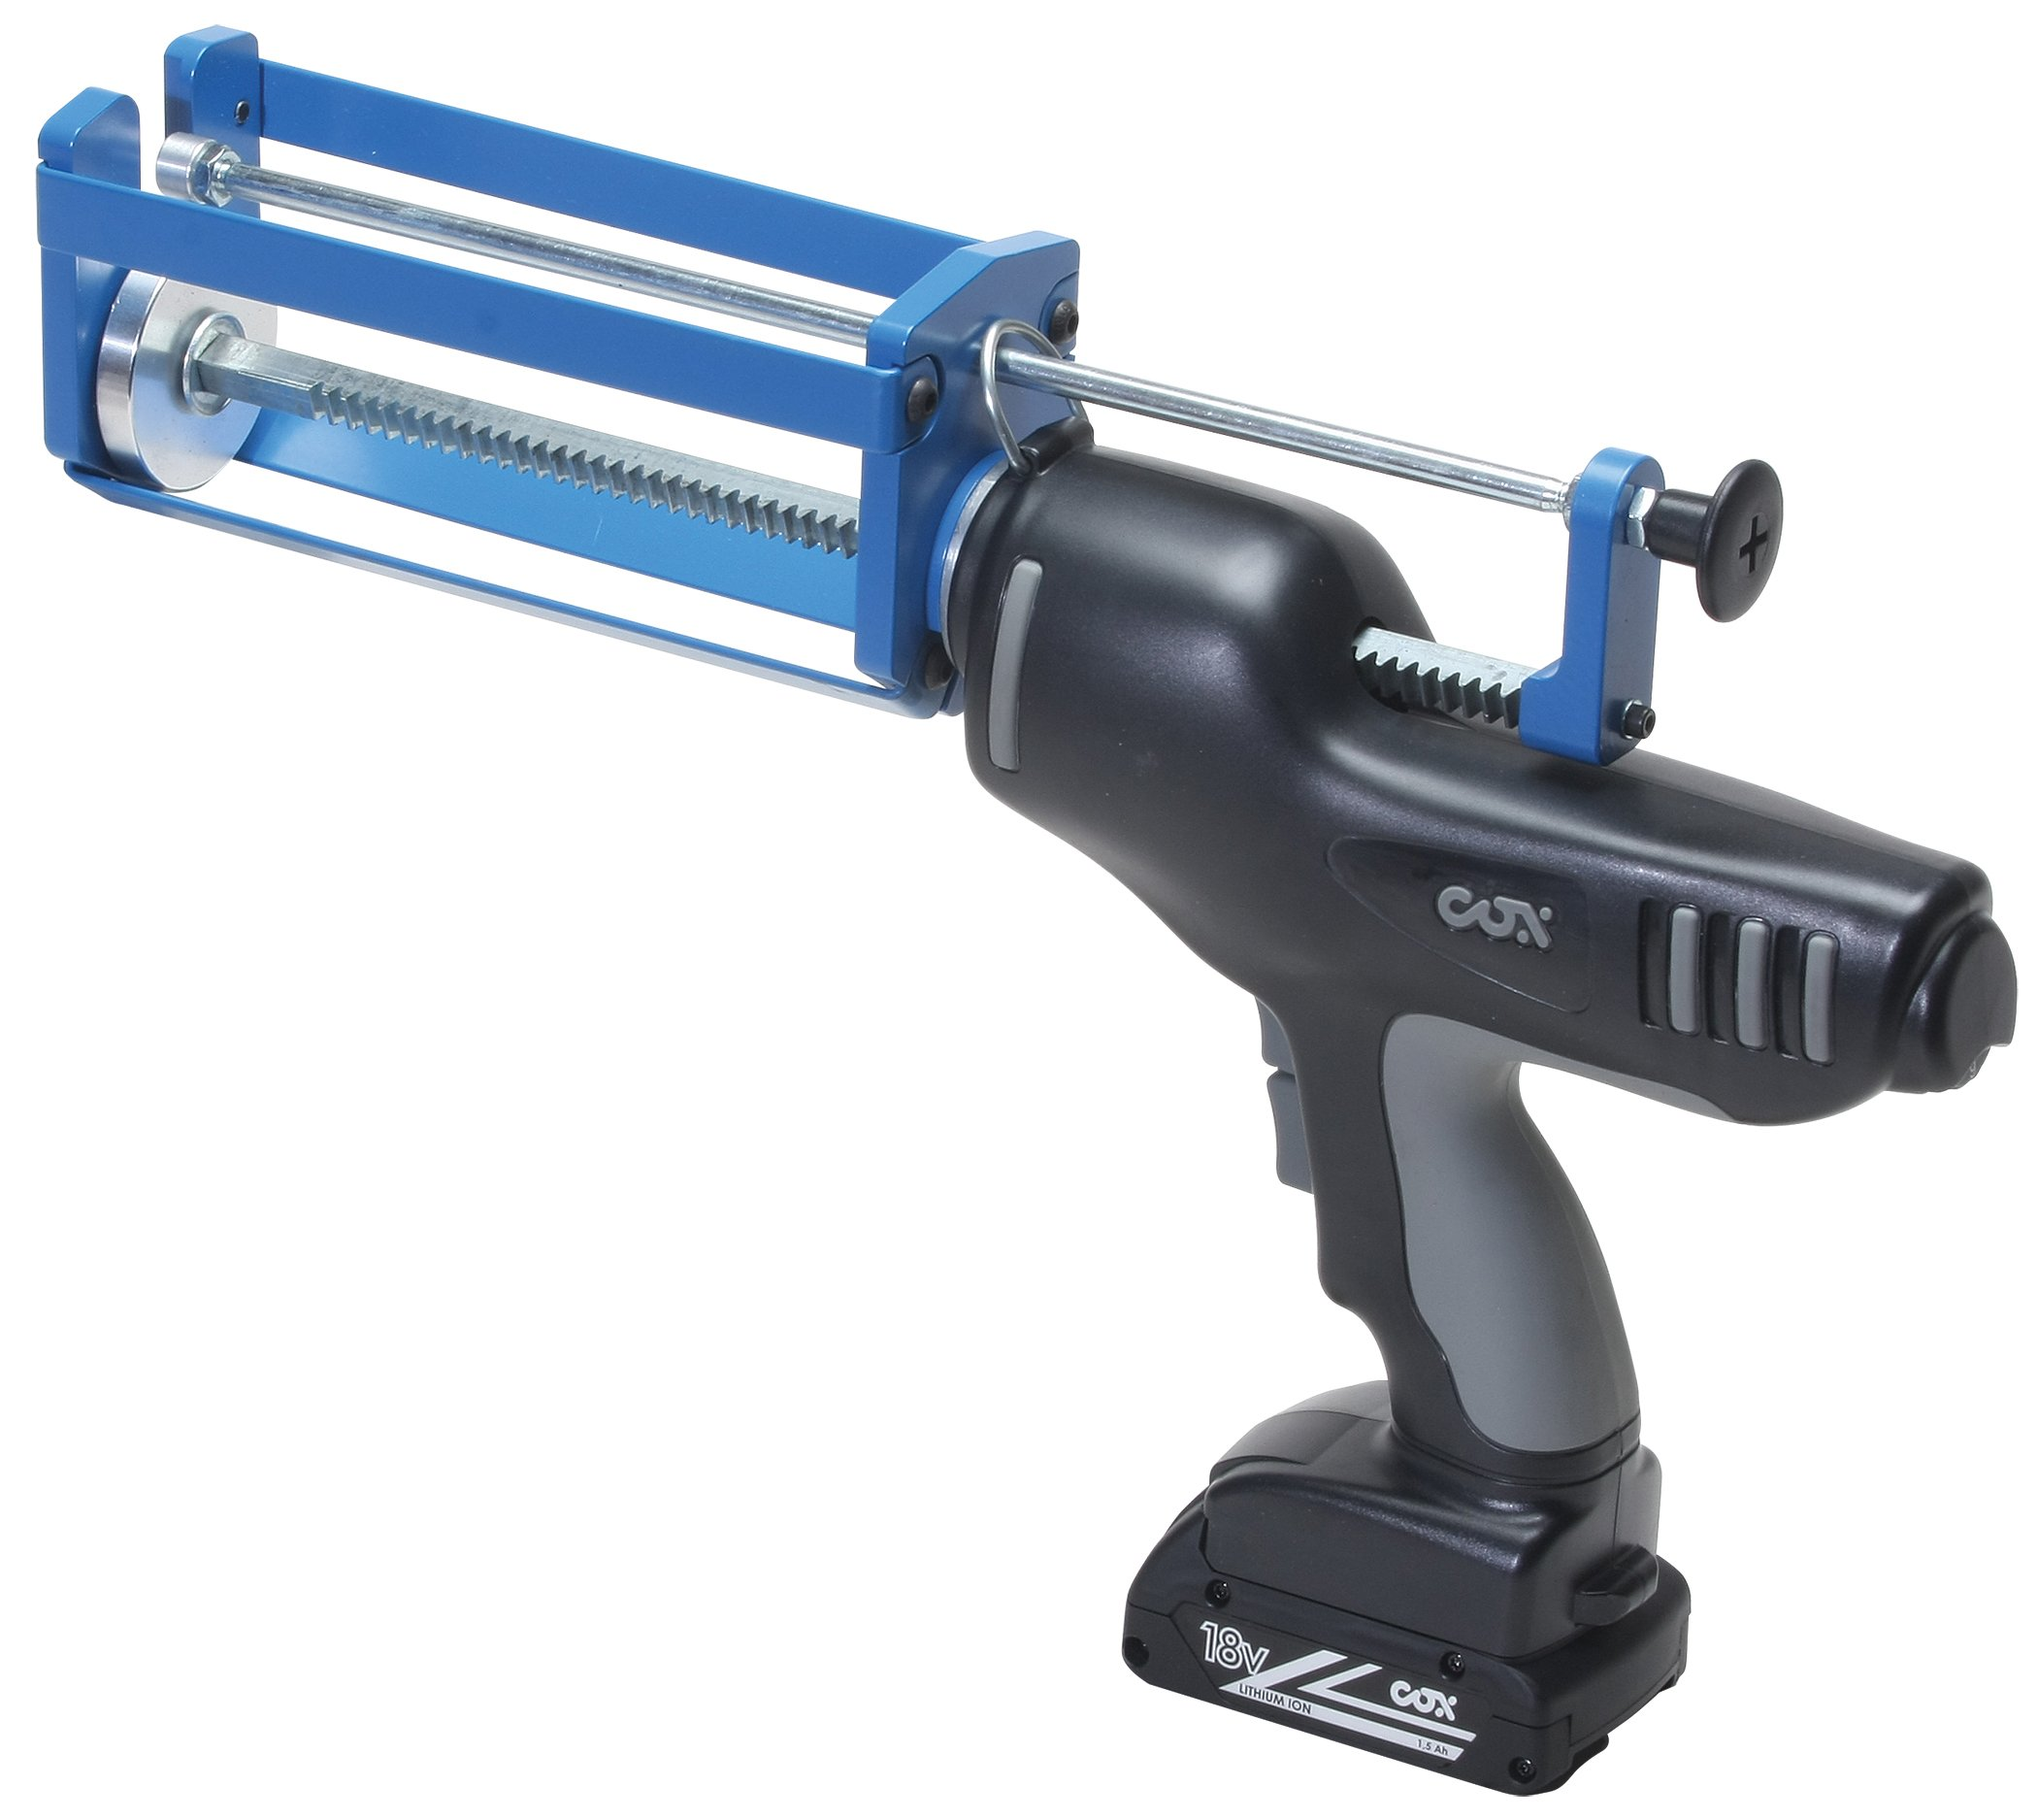 COX 80400 Cordless 400 ml. Total System 1:1, 2:1, 4:1 & 10:1 Mix Ratios 18-Volt Battery Operated Epoxy Applicator by COX